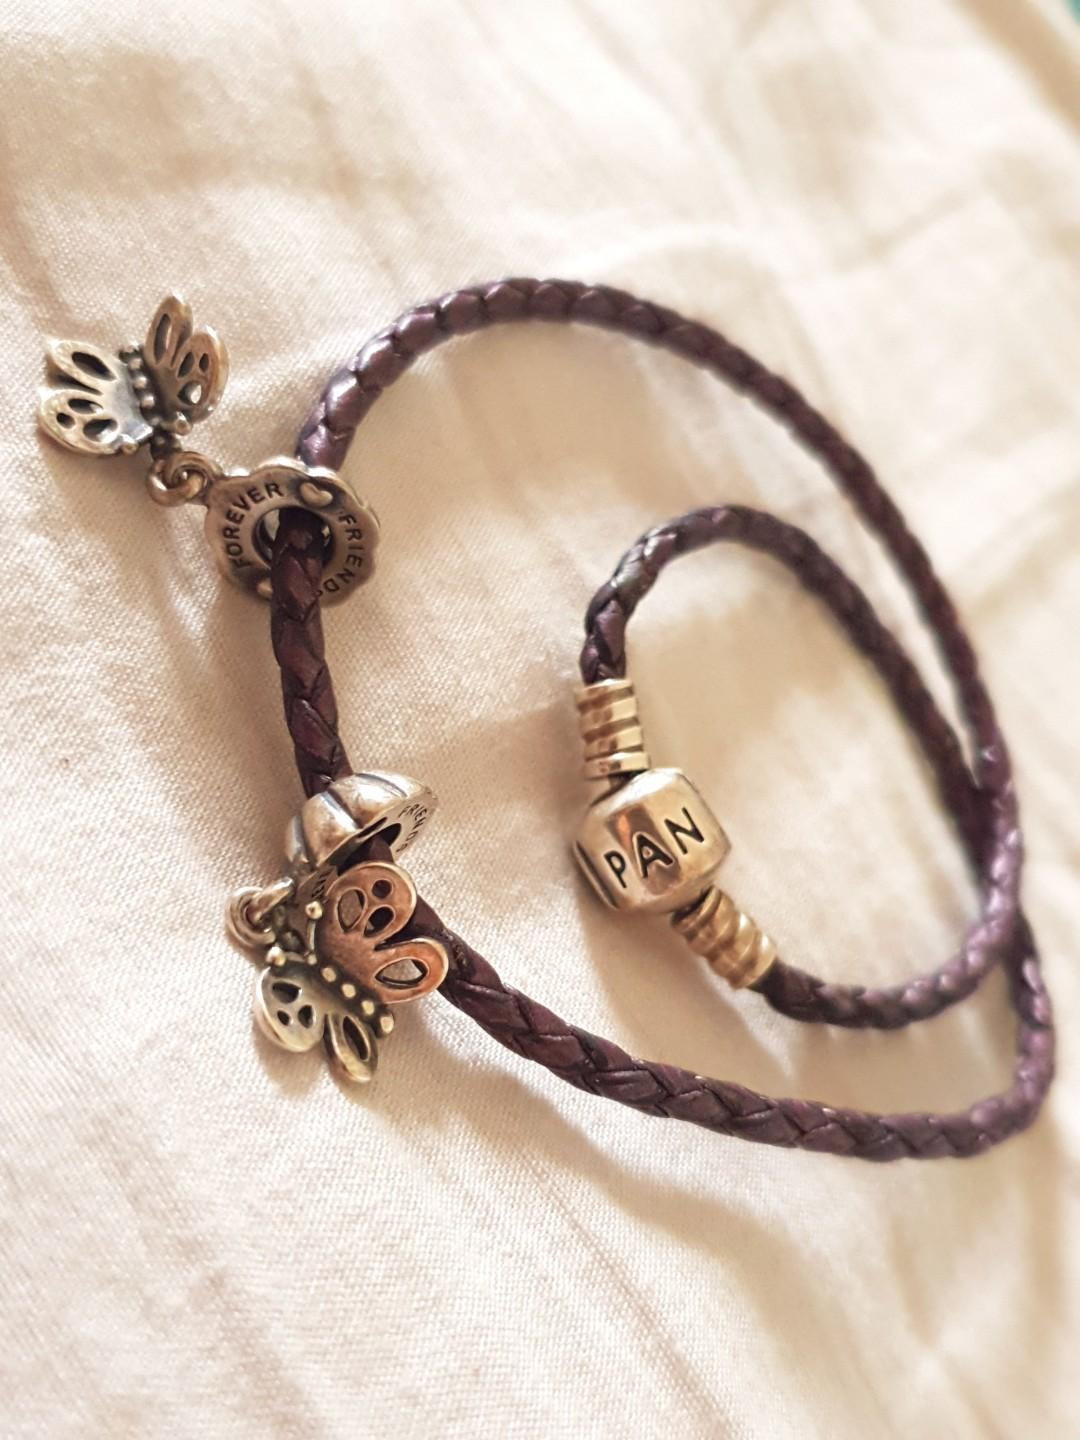 Purple pandora bracelet with 2 charms